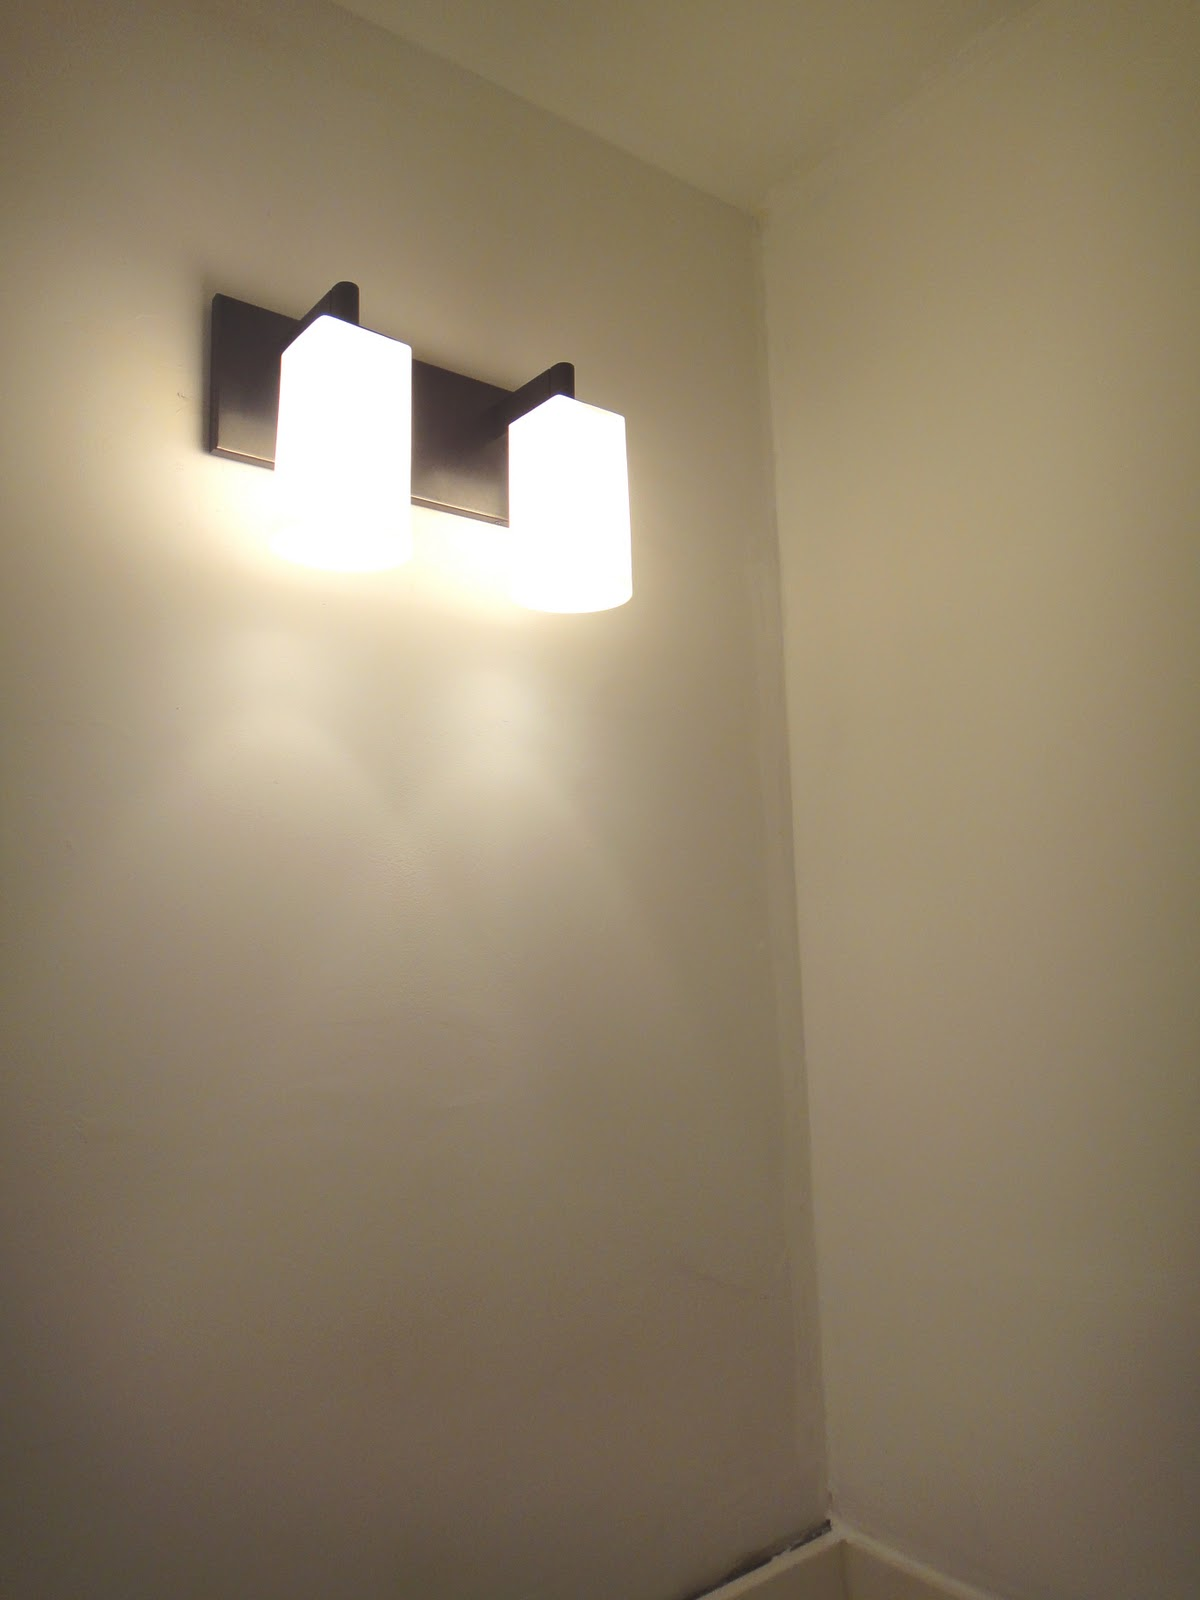 BATHROOM LIGHT FIXTURES WITH OUTLET - Bathroom Furniture